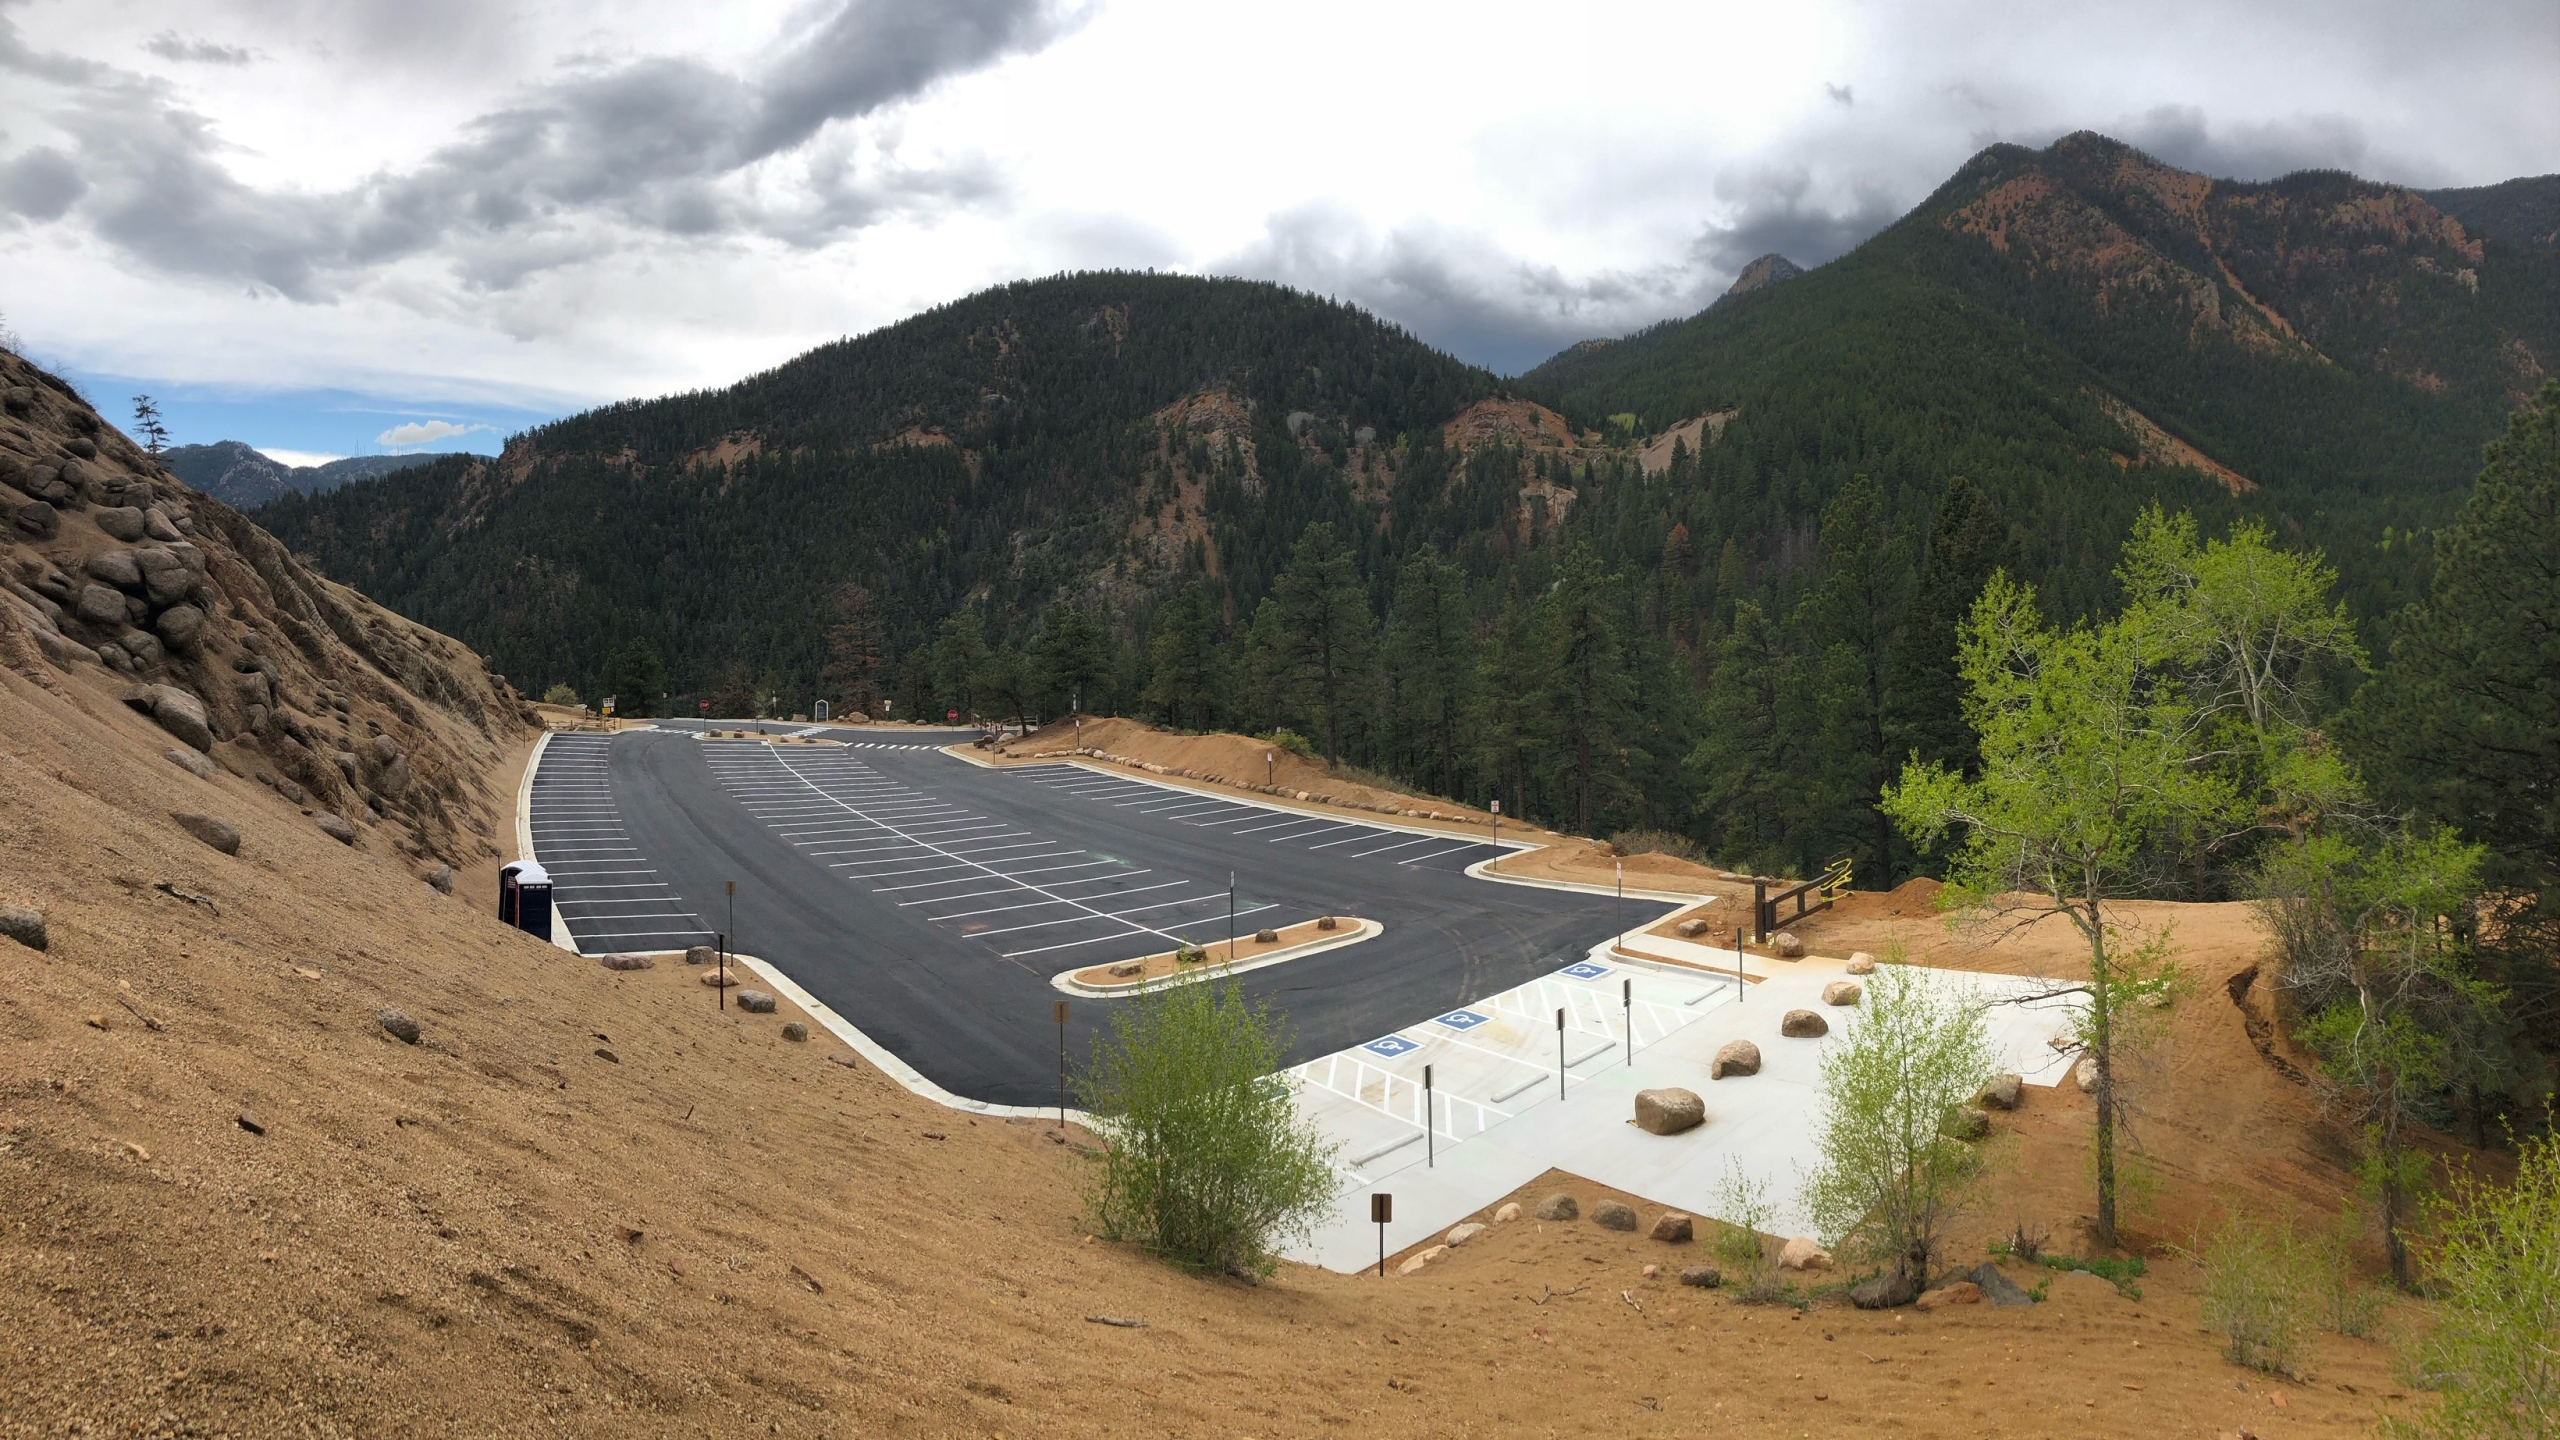 """The """"hub"""" parking lot uphill from Helen Hunt Falls in North Cheyenne Cañon Park reopened Wednesday with 92 paved parking spaces. / Photo courtesy City of Colorado Springs"""